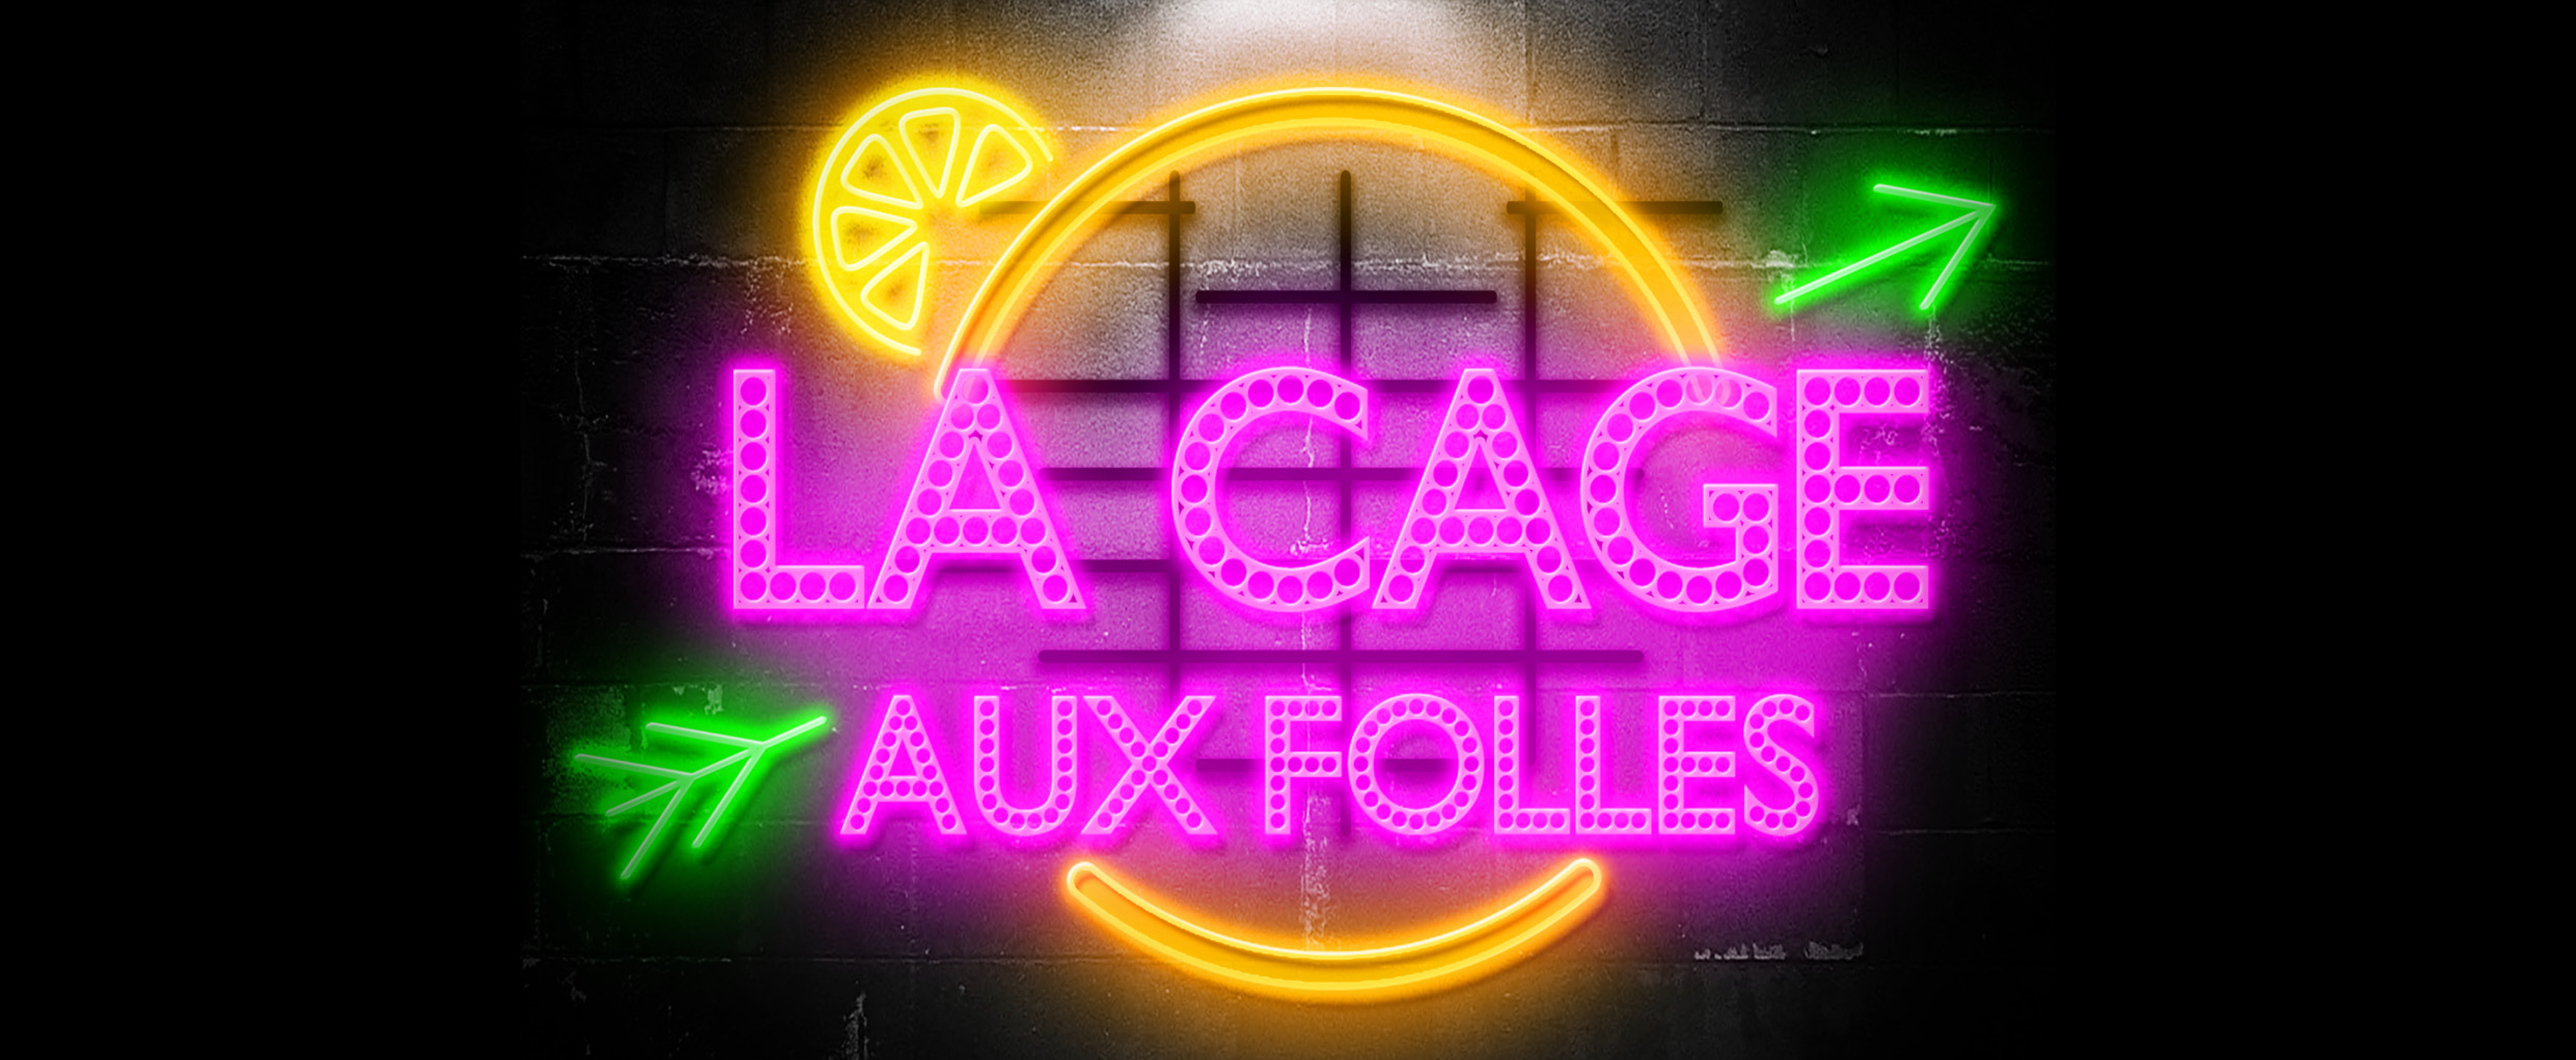 La Cage aux Folles at the Duluth Playhouse